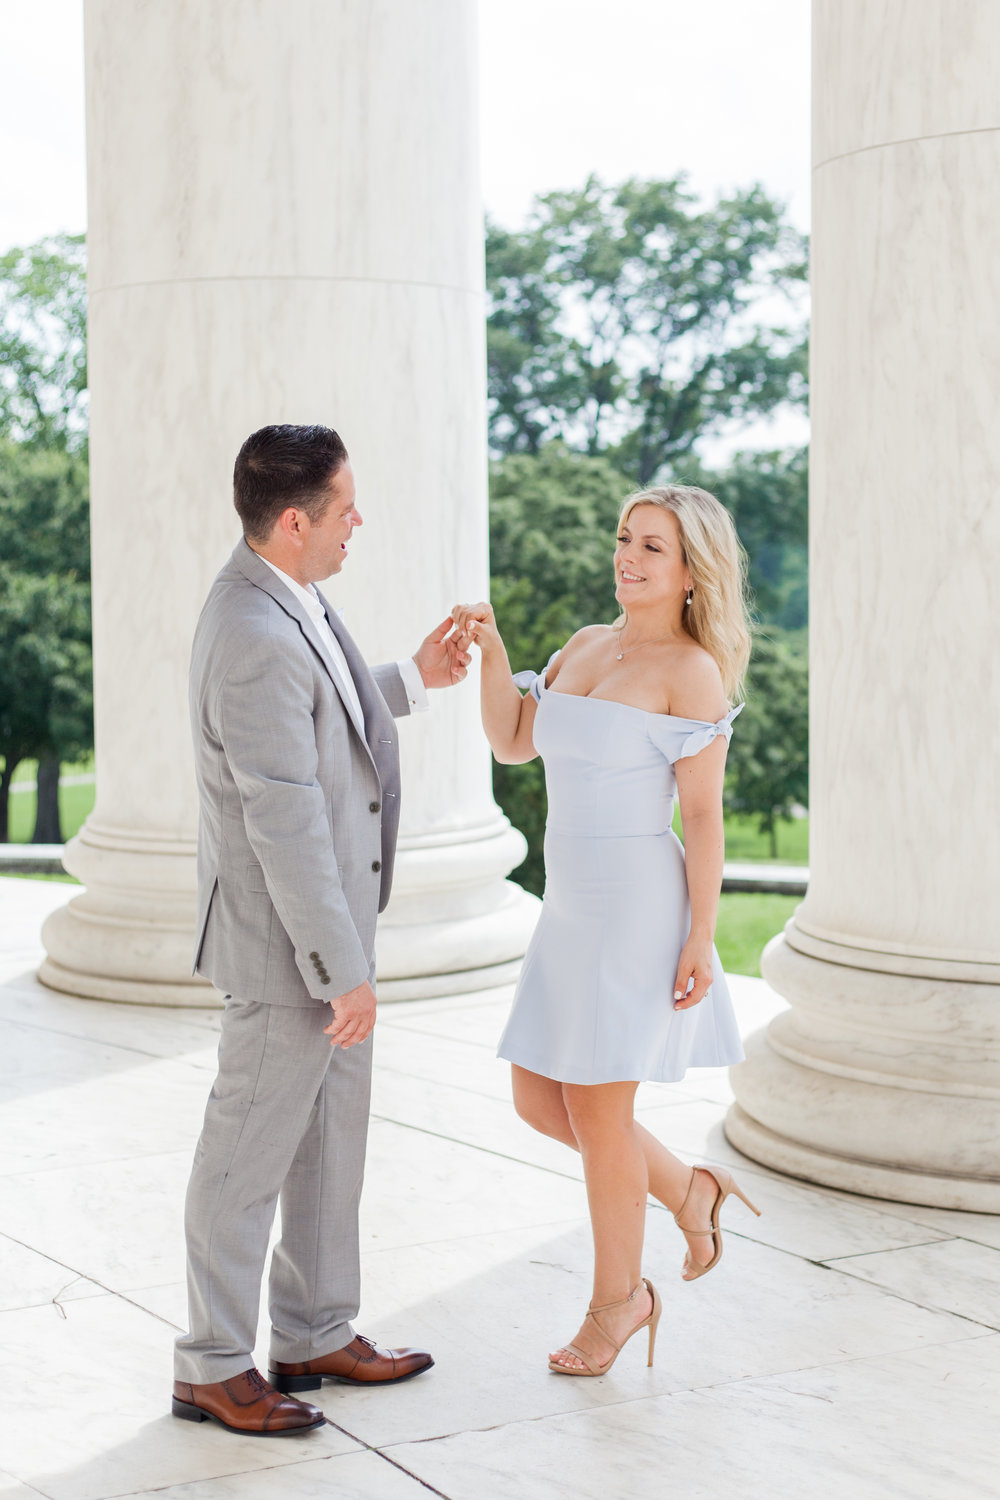 Michelle + Maydel - Washington, D.C.